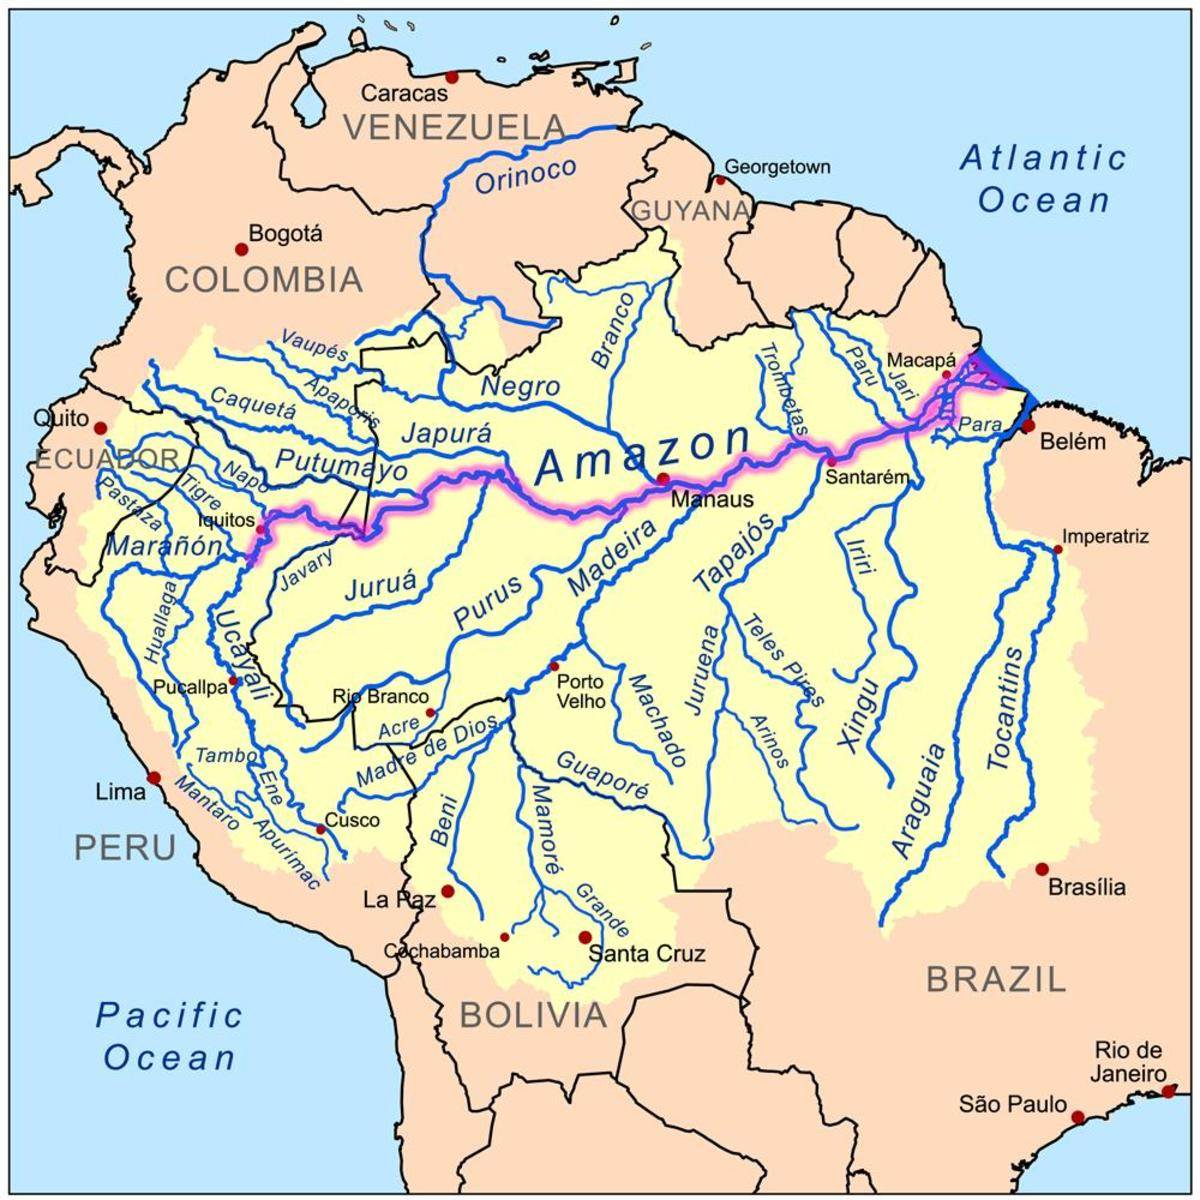 Amazon River - the worlds largest River (not longest) at a width of about 40 kilometres. Image Credit: Wikipedia